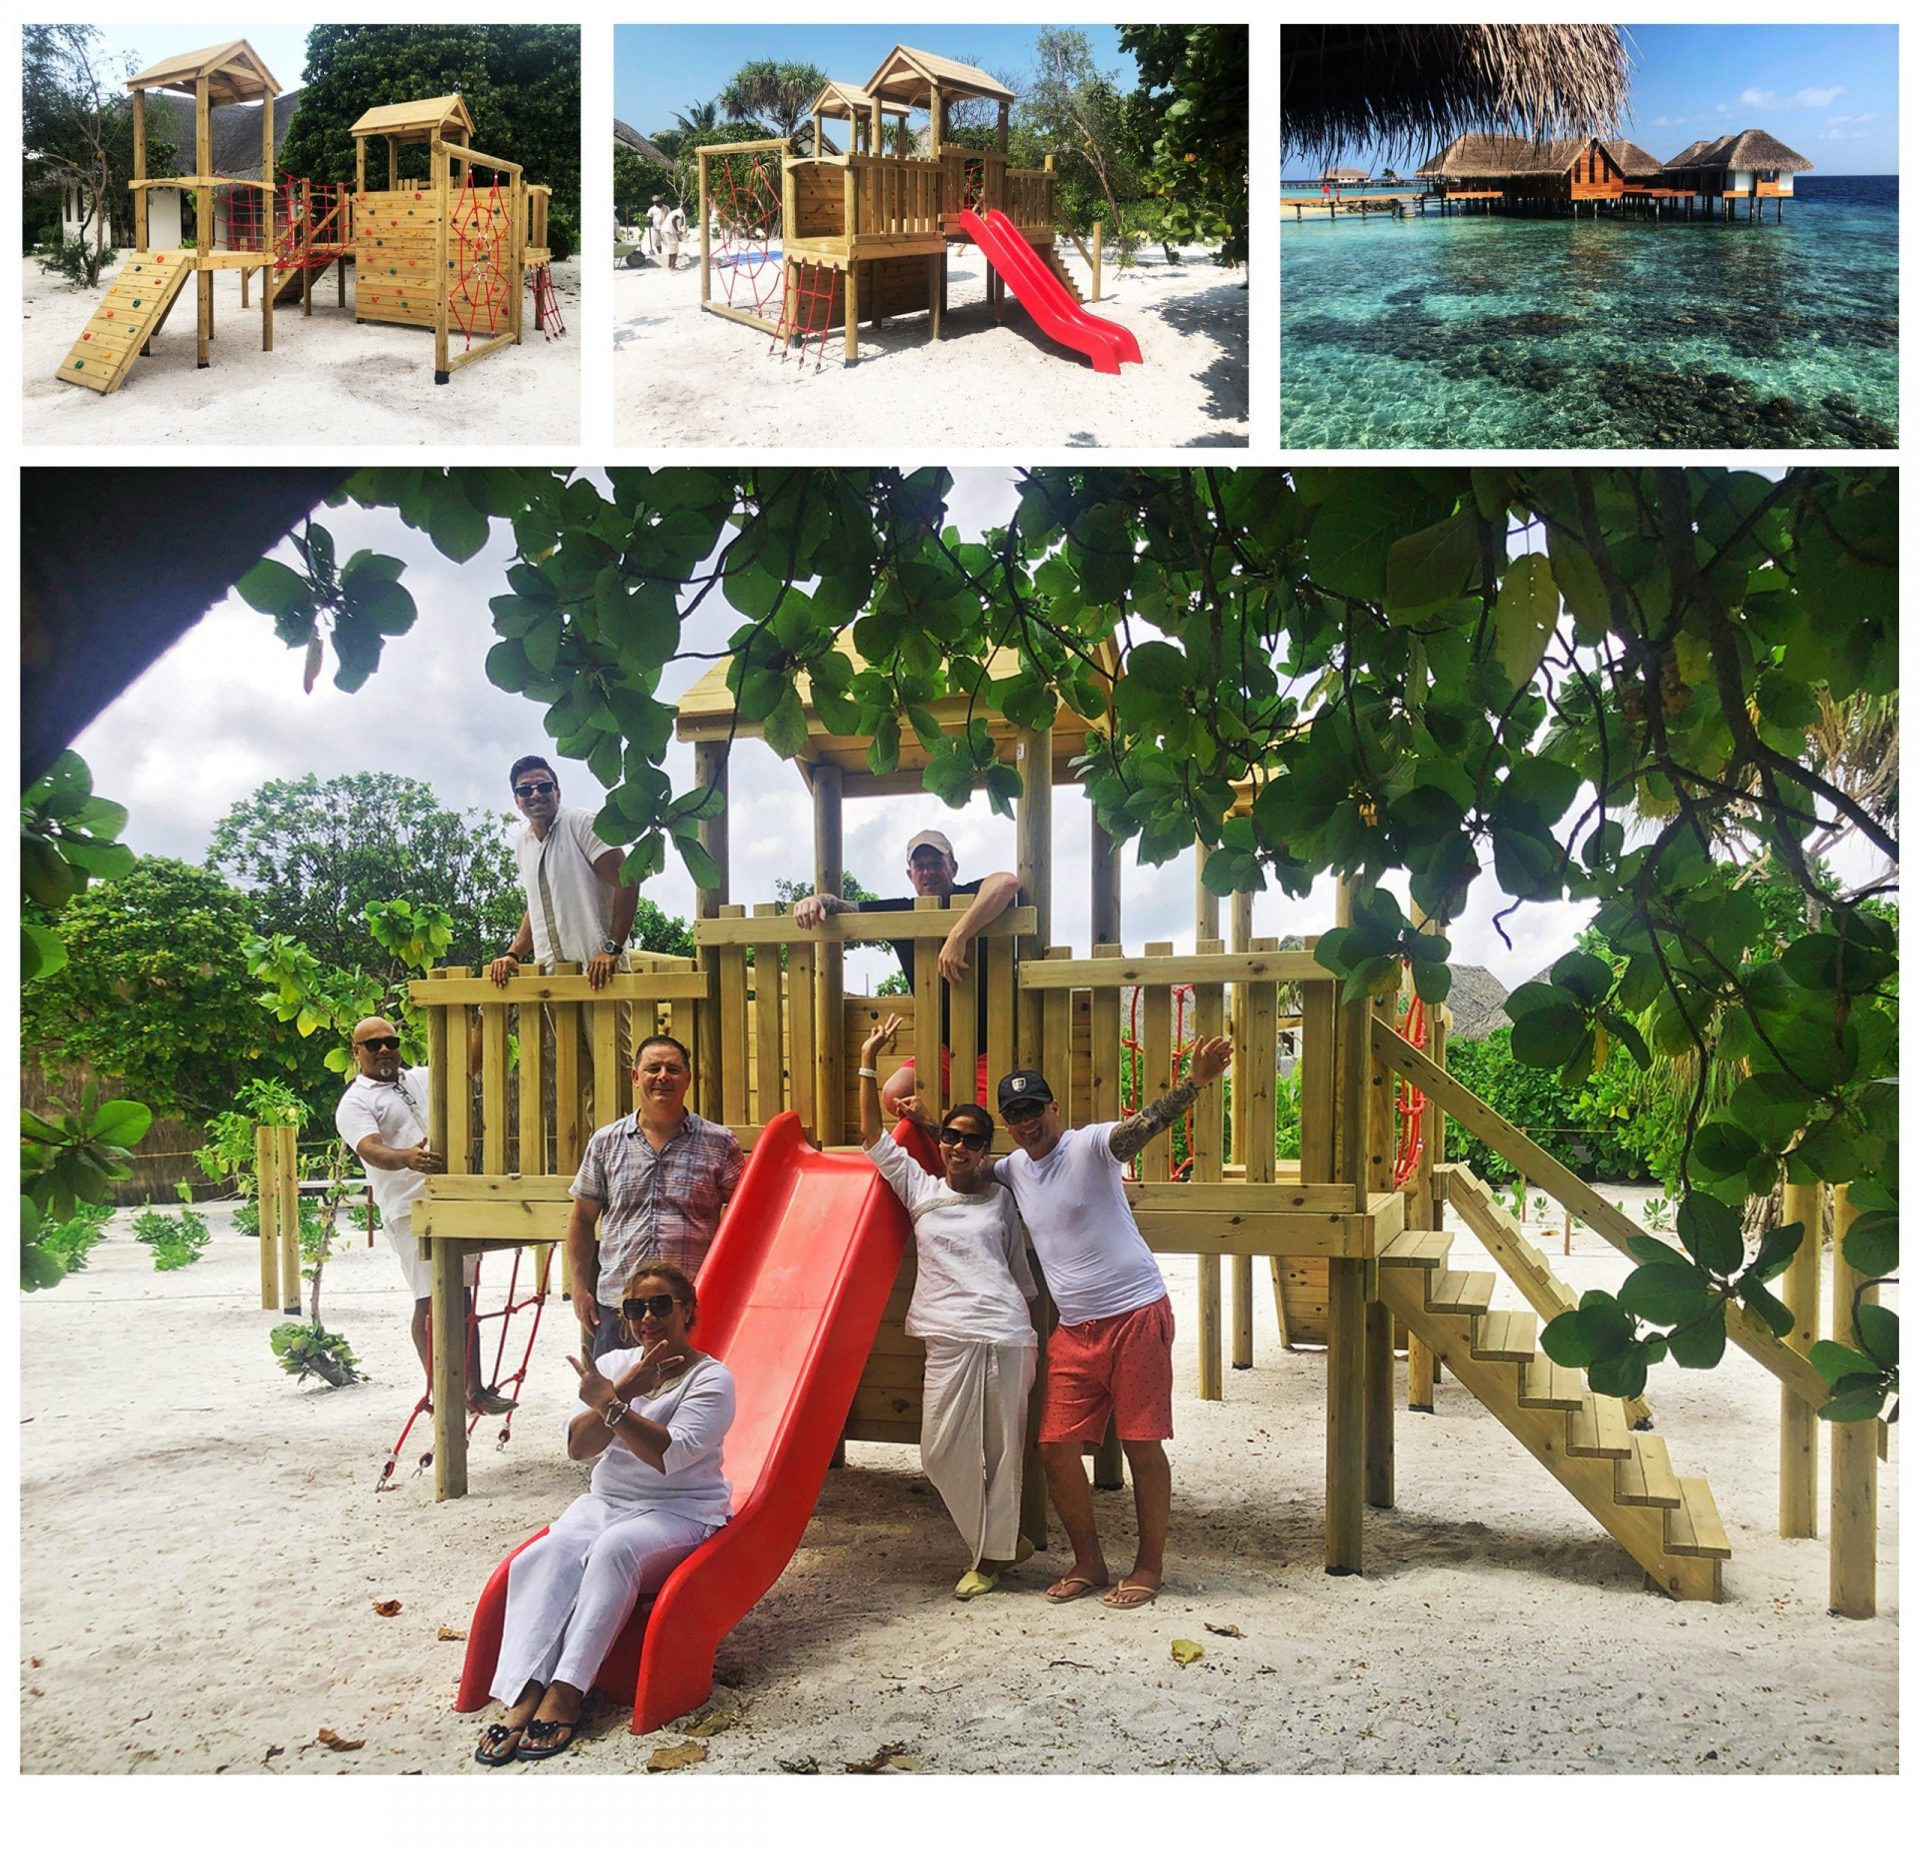 maldives outdoor playground equipment project red monkey play